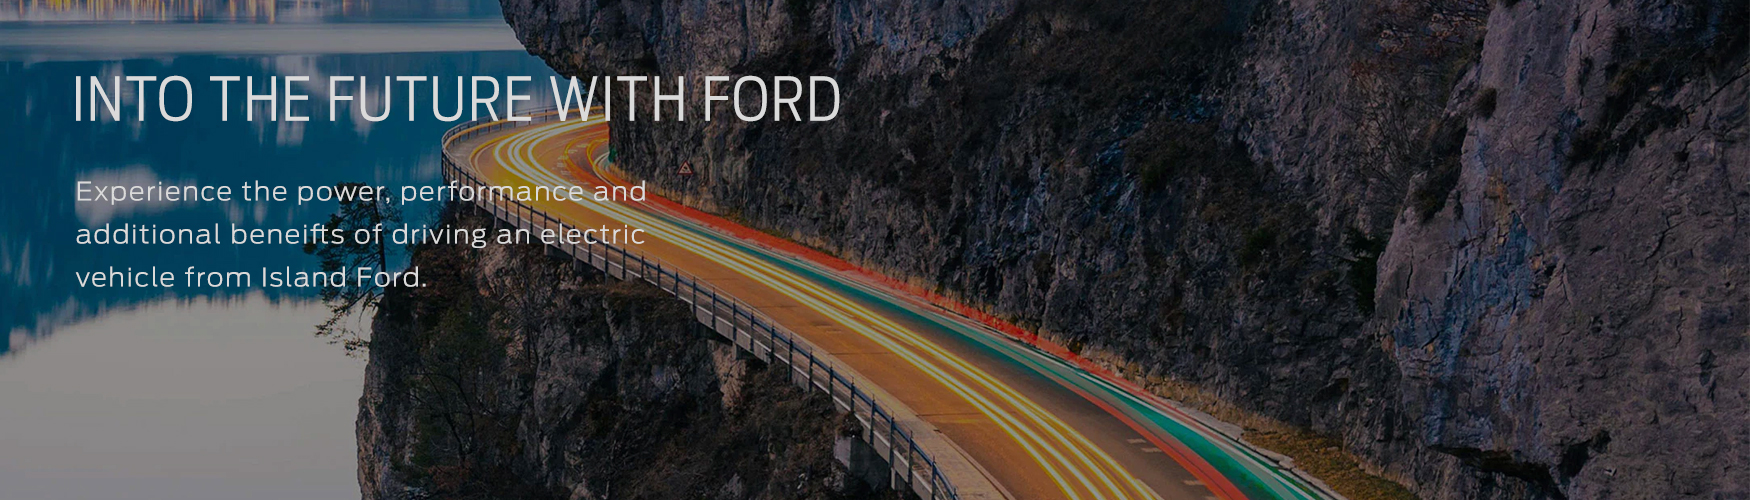 Electrified Ford Vehicles